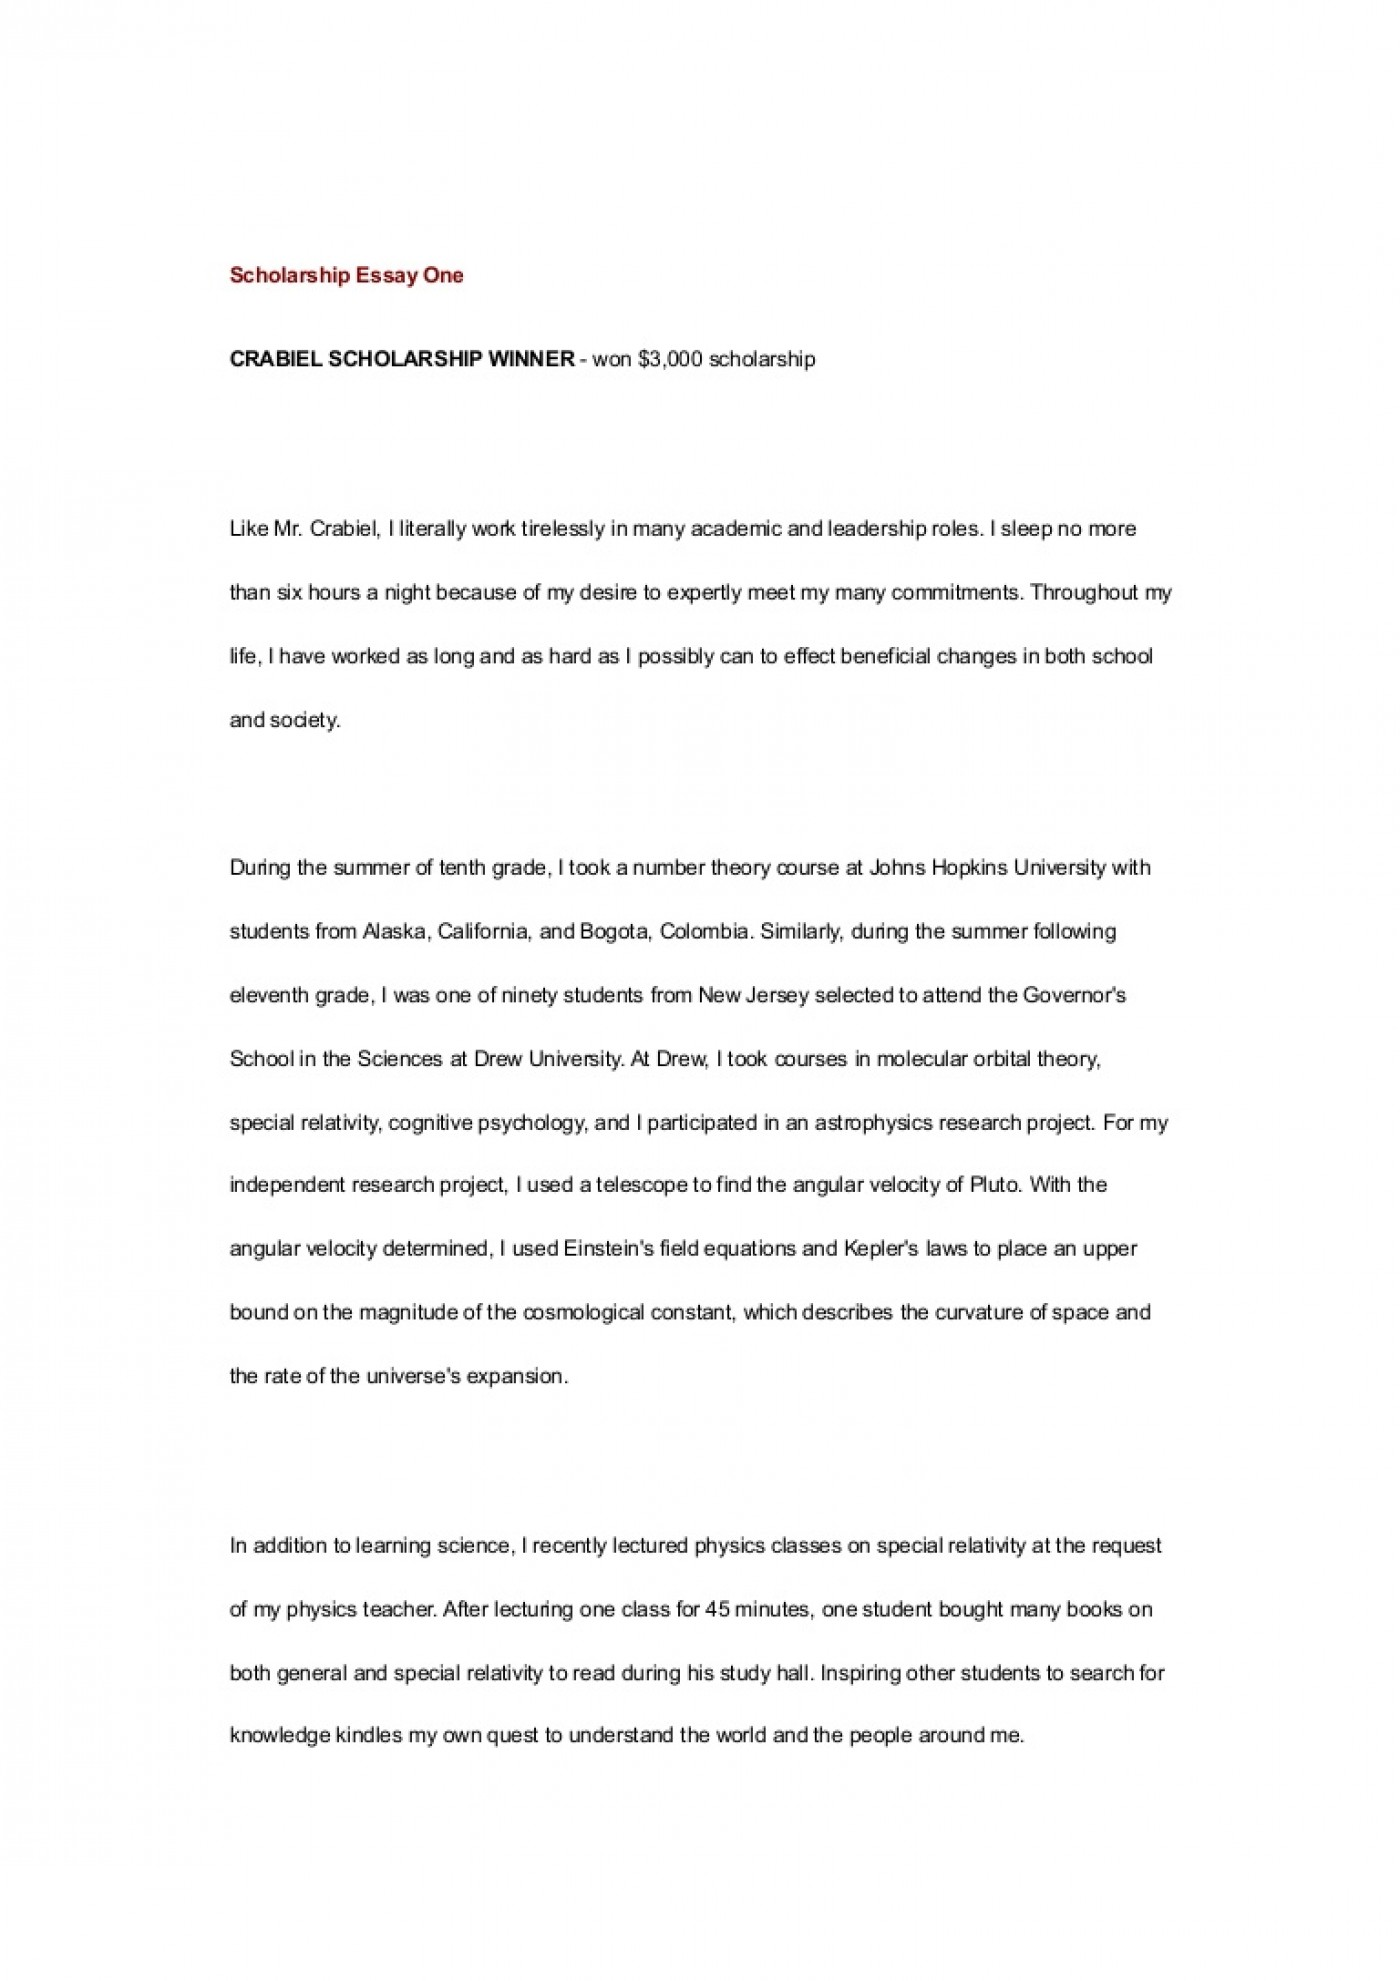 005 Scholarship Essay Examples Example Scholarshipessayone Phpapp01 Thumbnail Impressive About Career Goals Pdf Winning For Study Abroad 1400